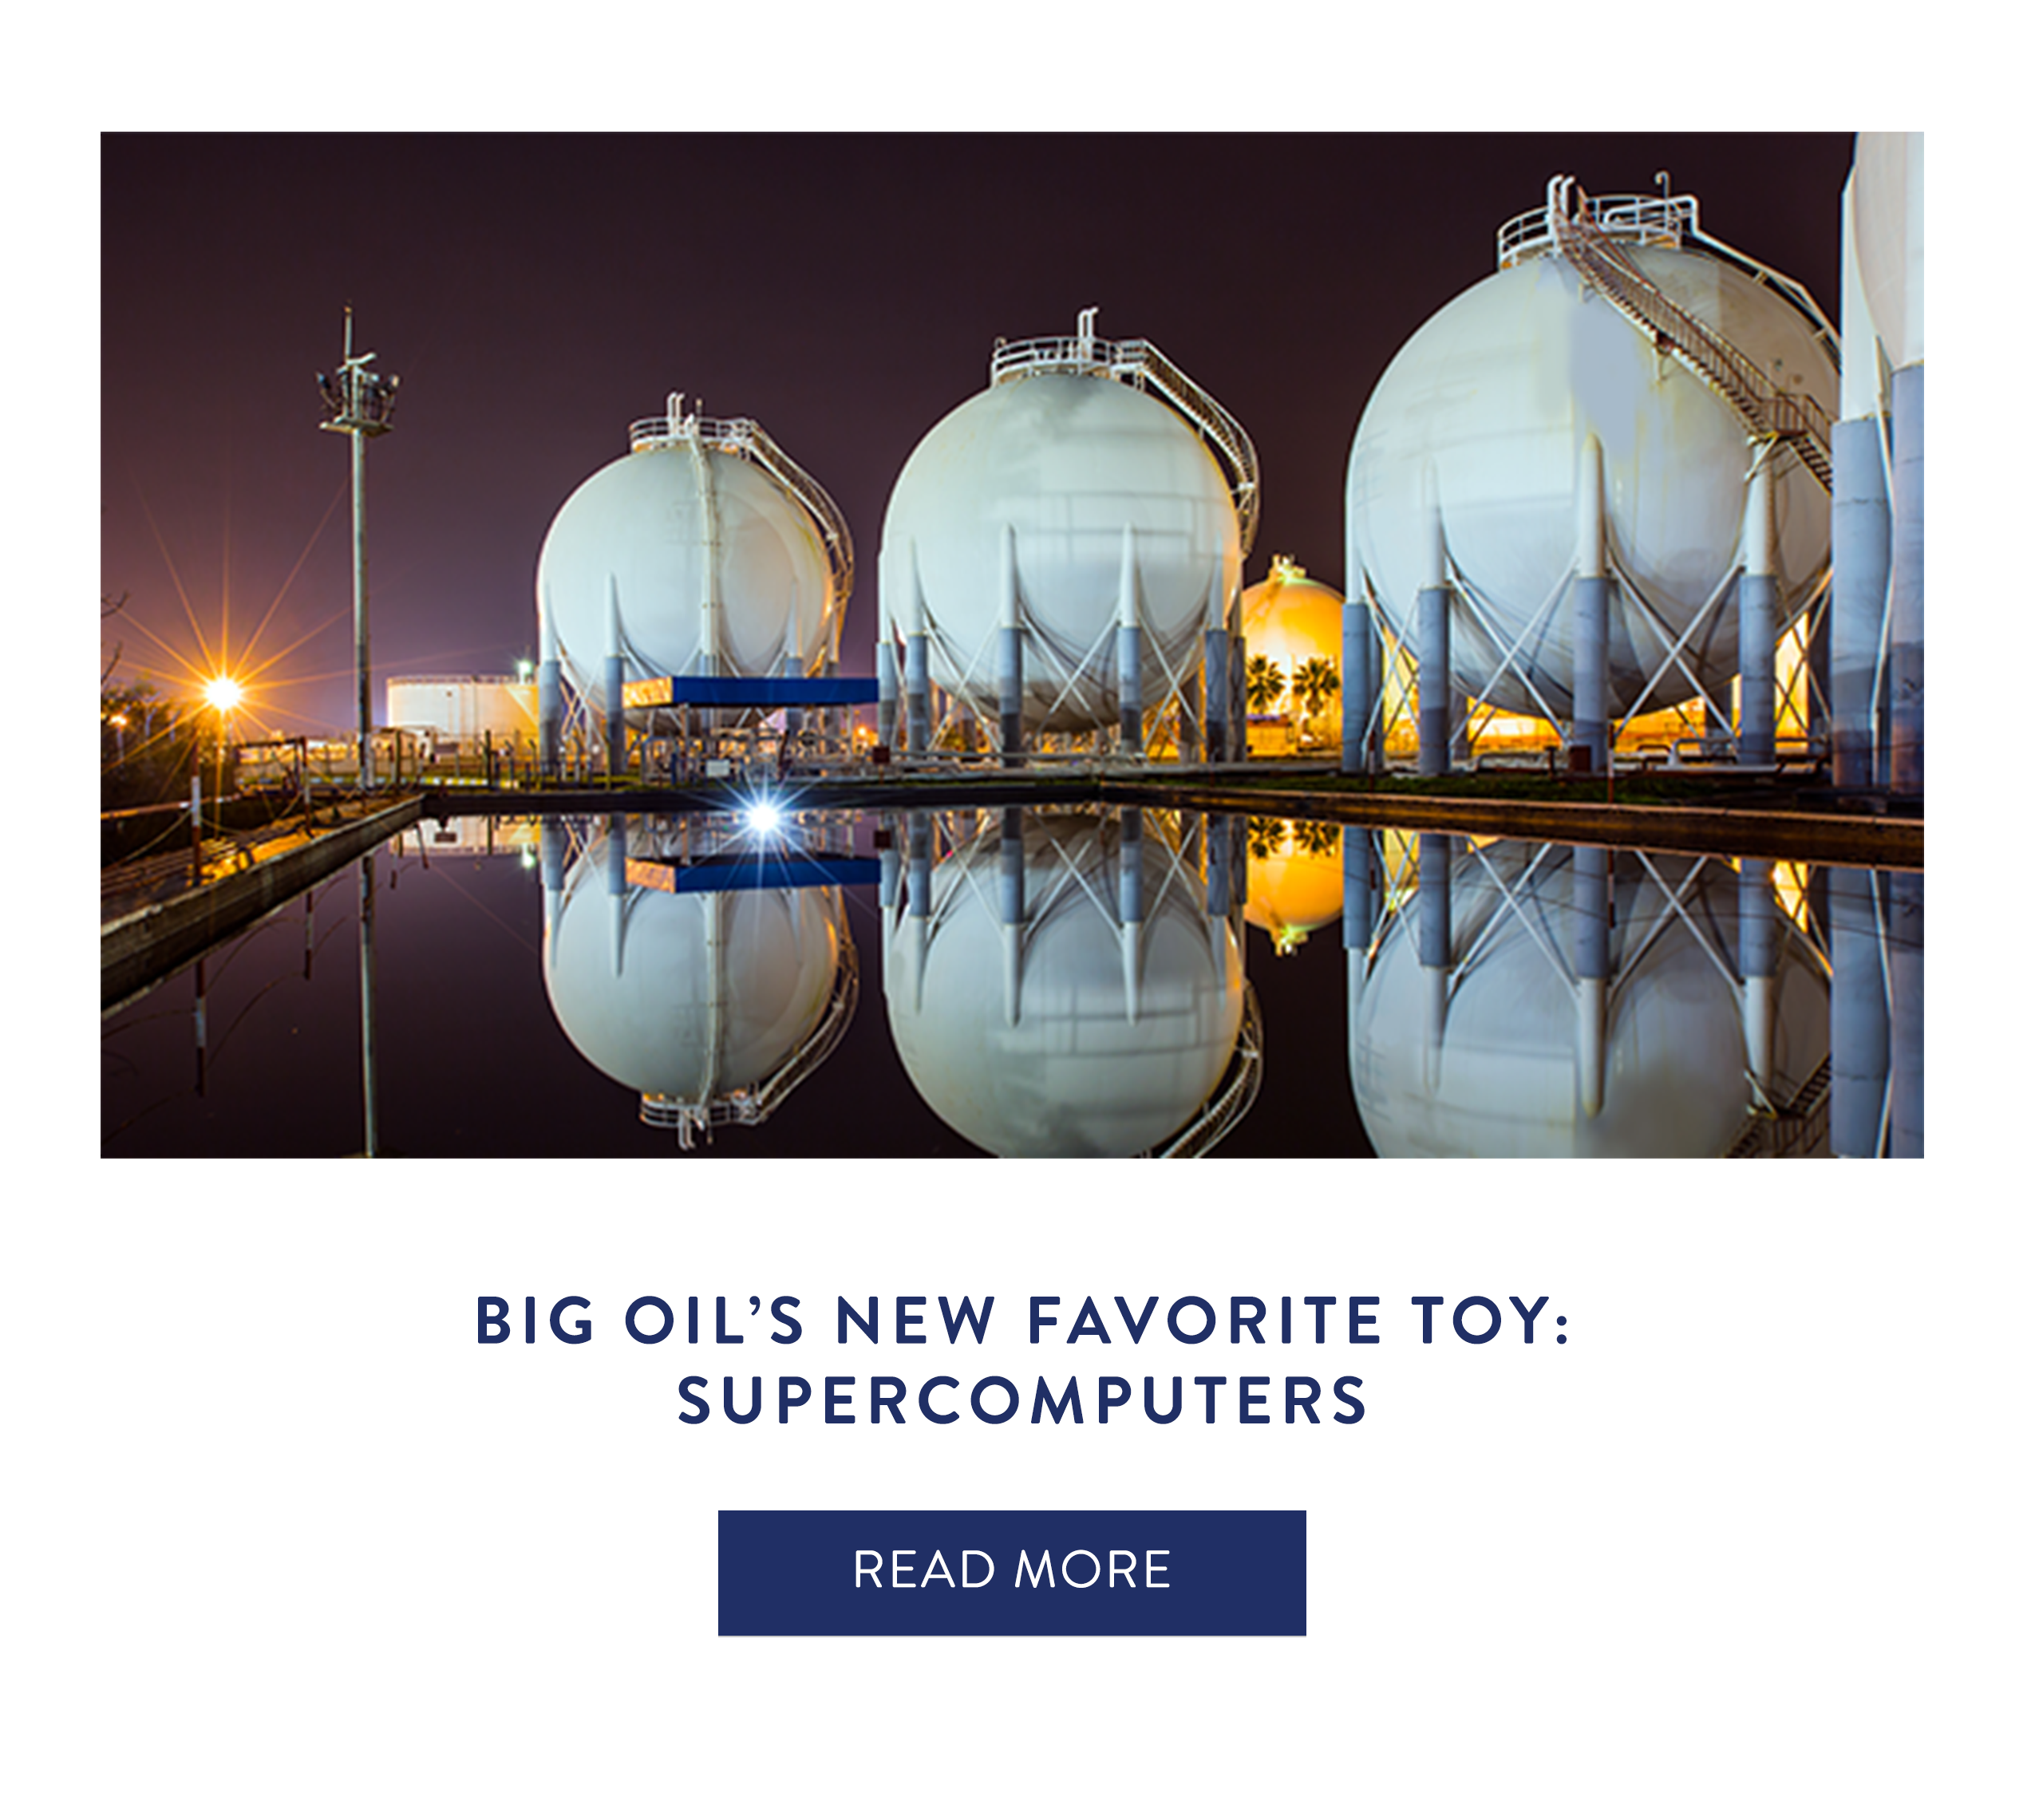 Big Oil's New Favorite Toy: Supercomputers